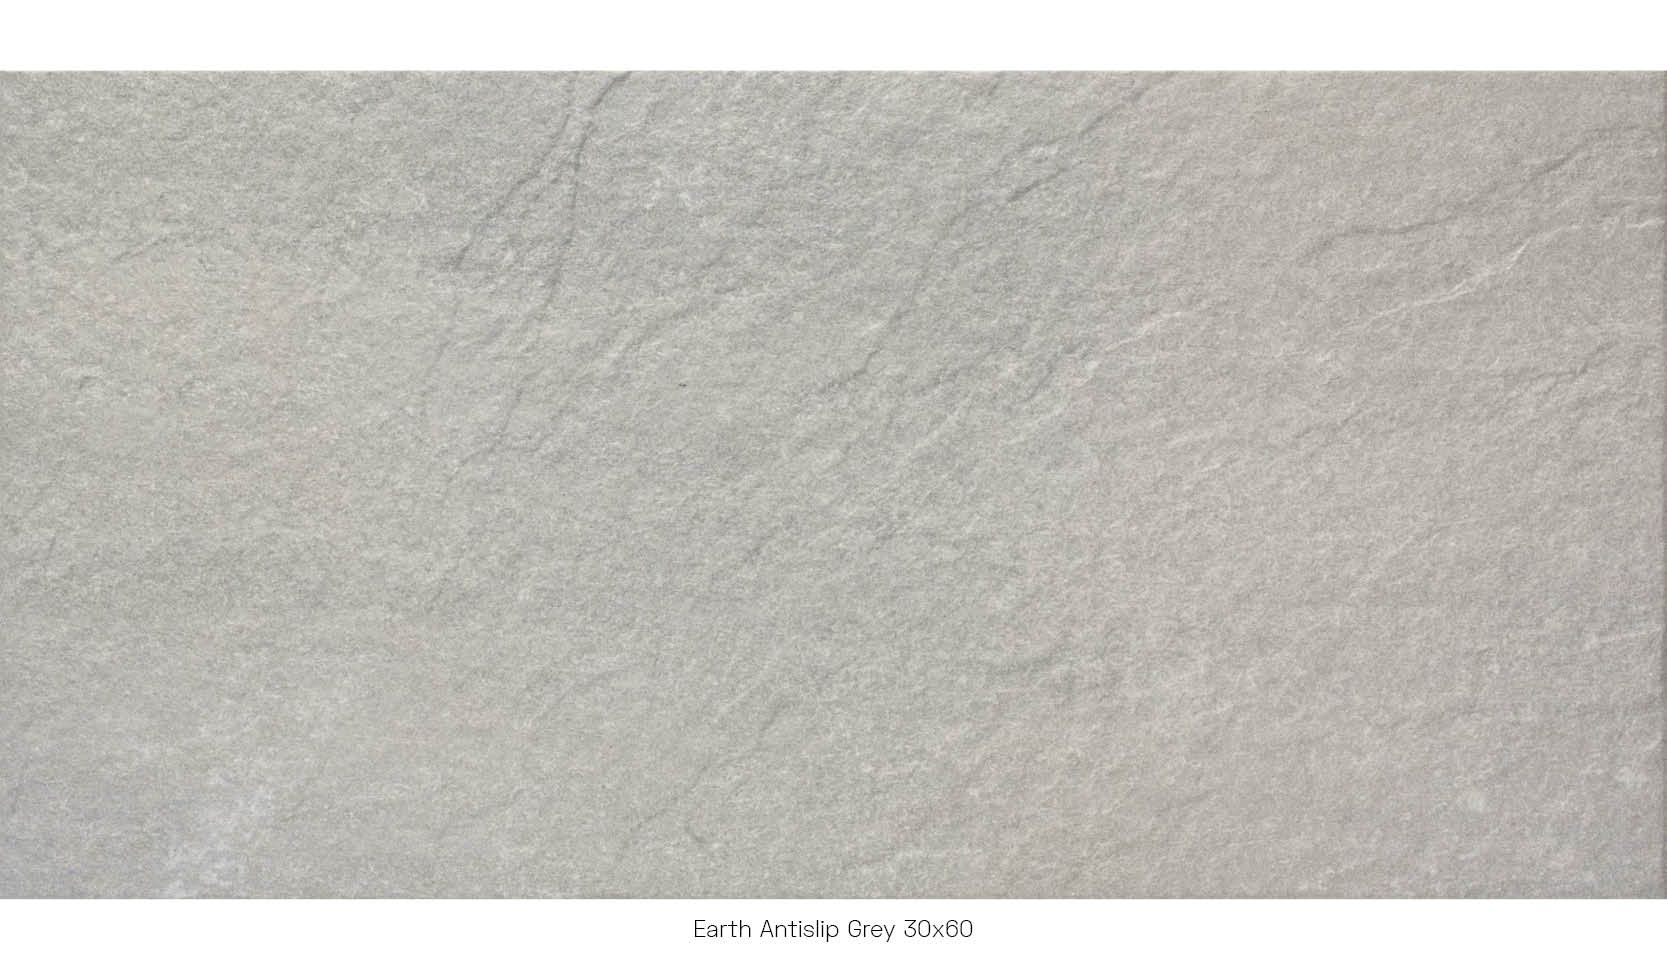 Earth Antislip Grey 30 x 60